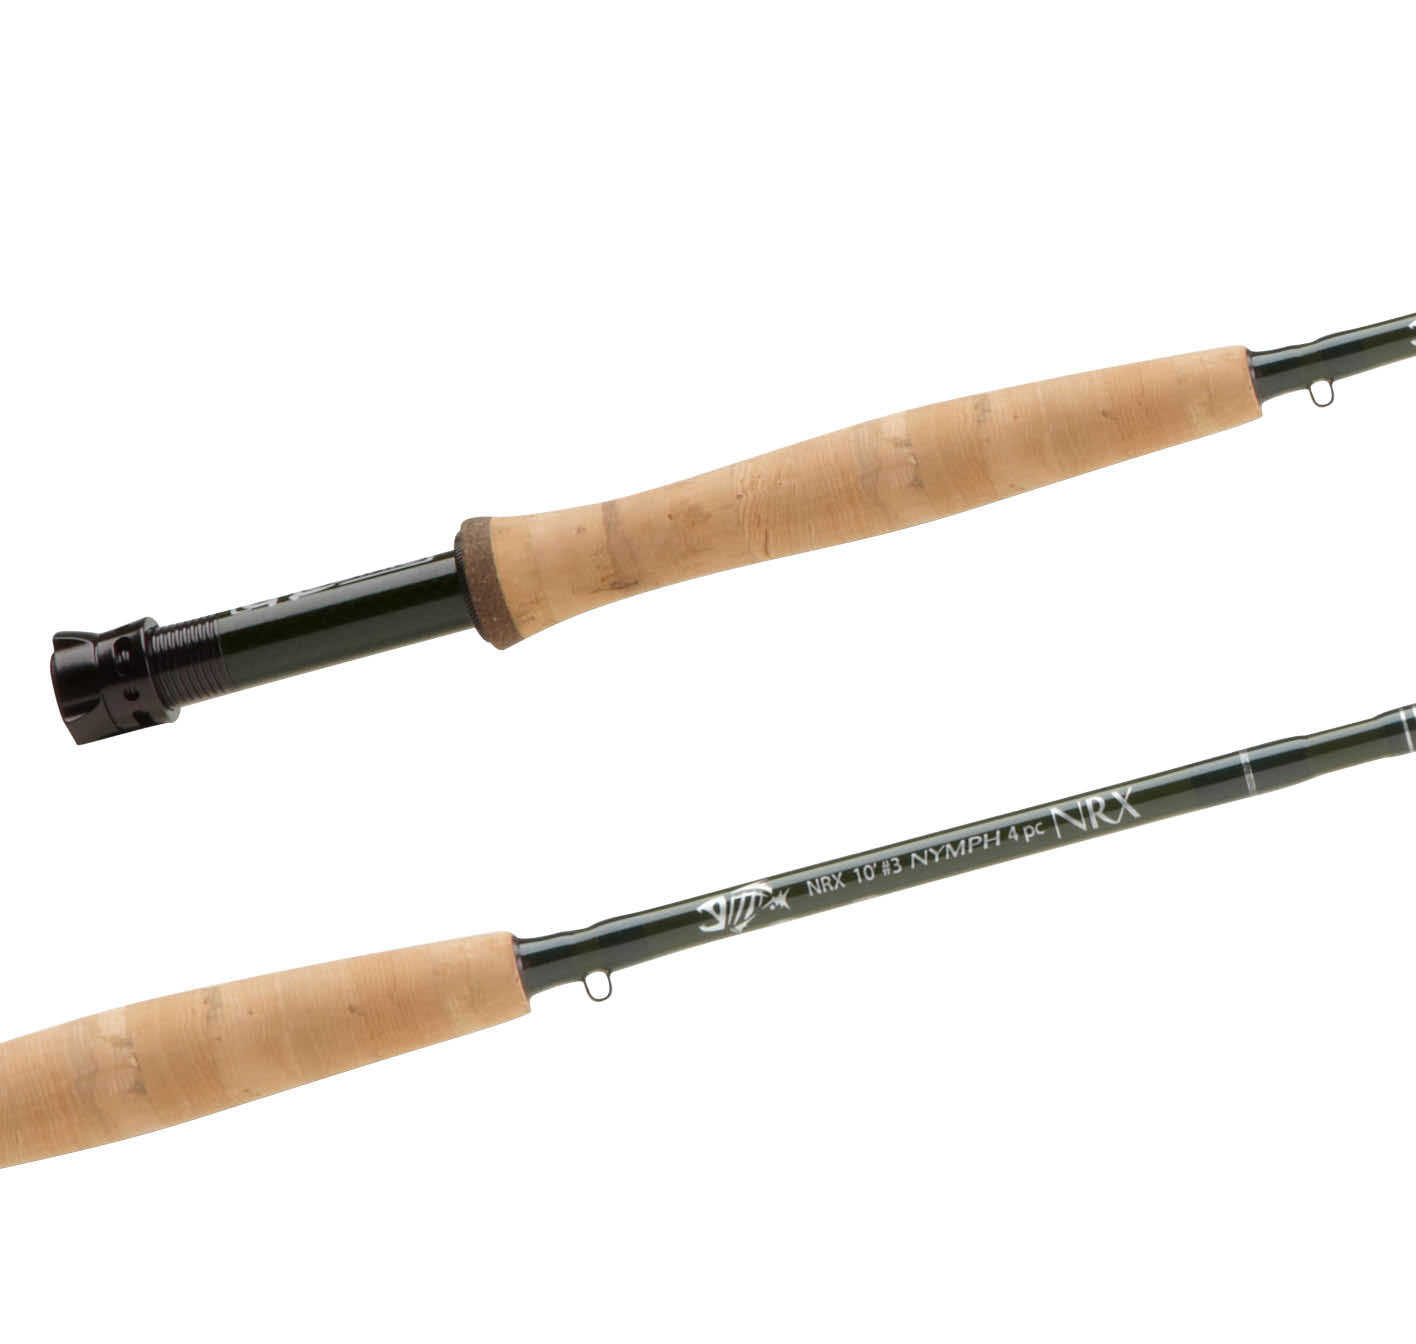 G. Loomis NRX Nymph Freshwater Fly Rods [Discontinued]